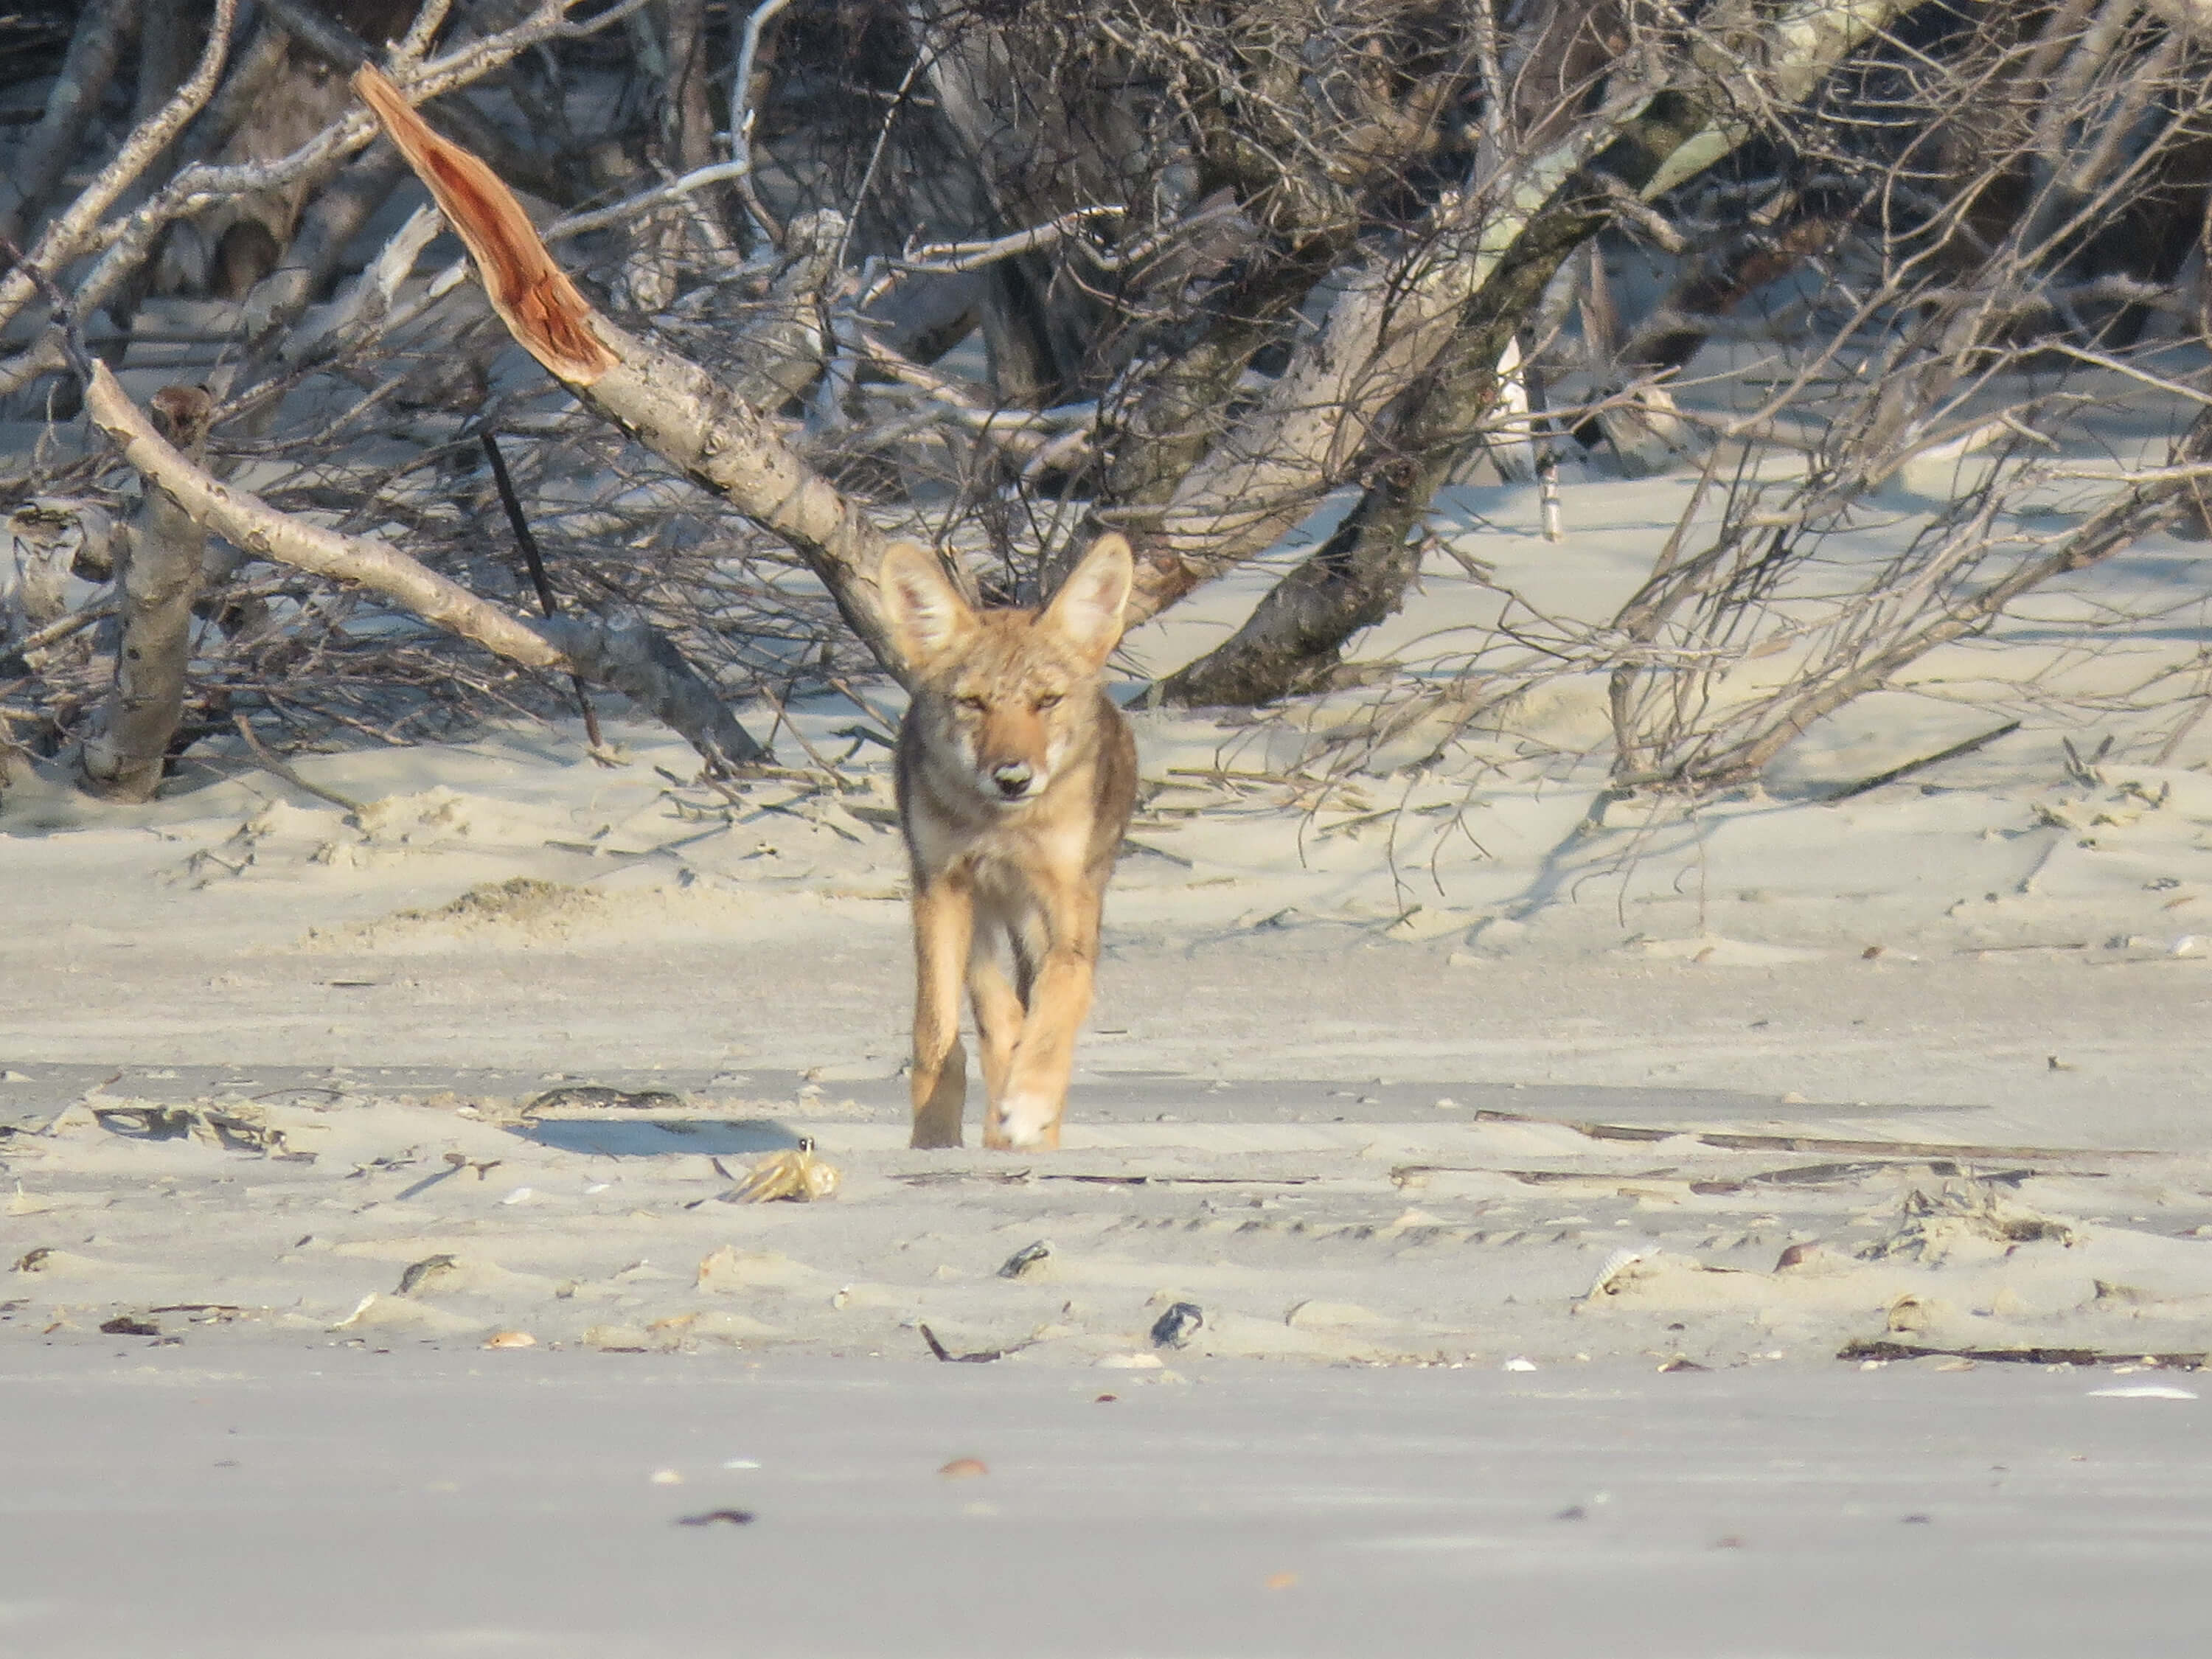 Coyote Pup plays on the beach